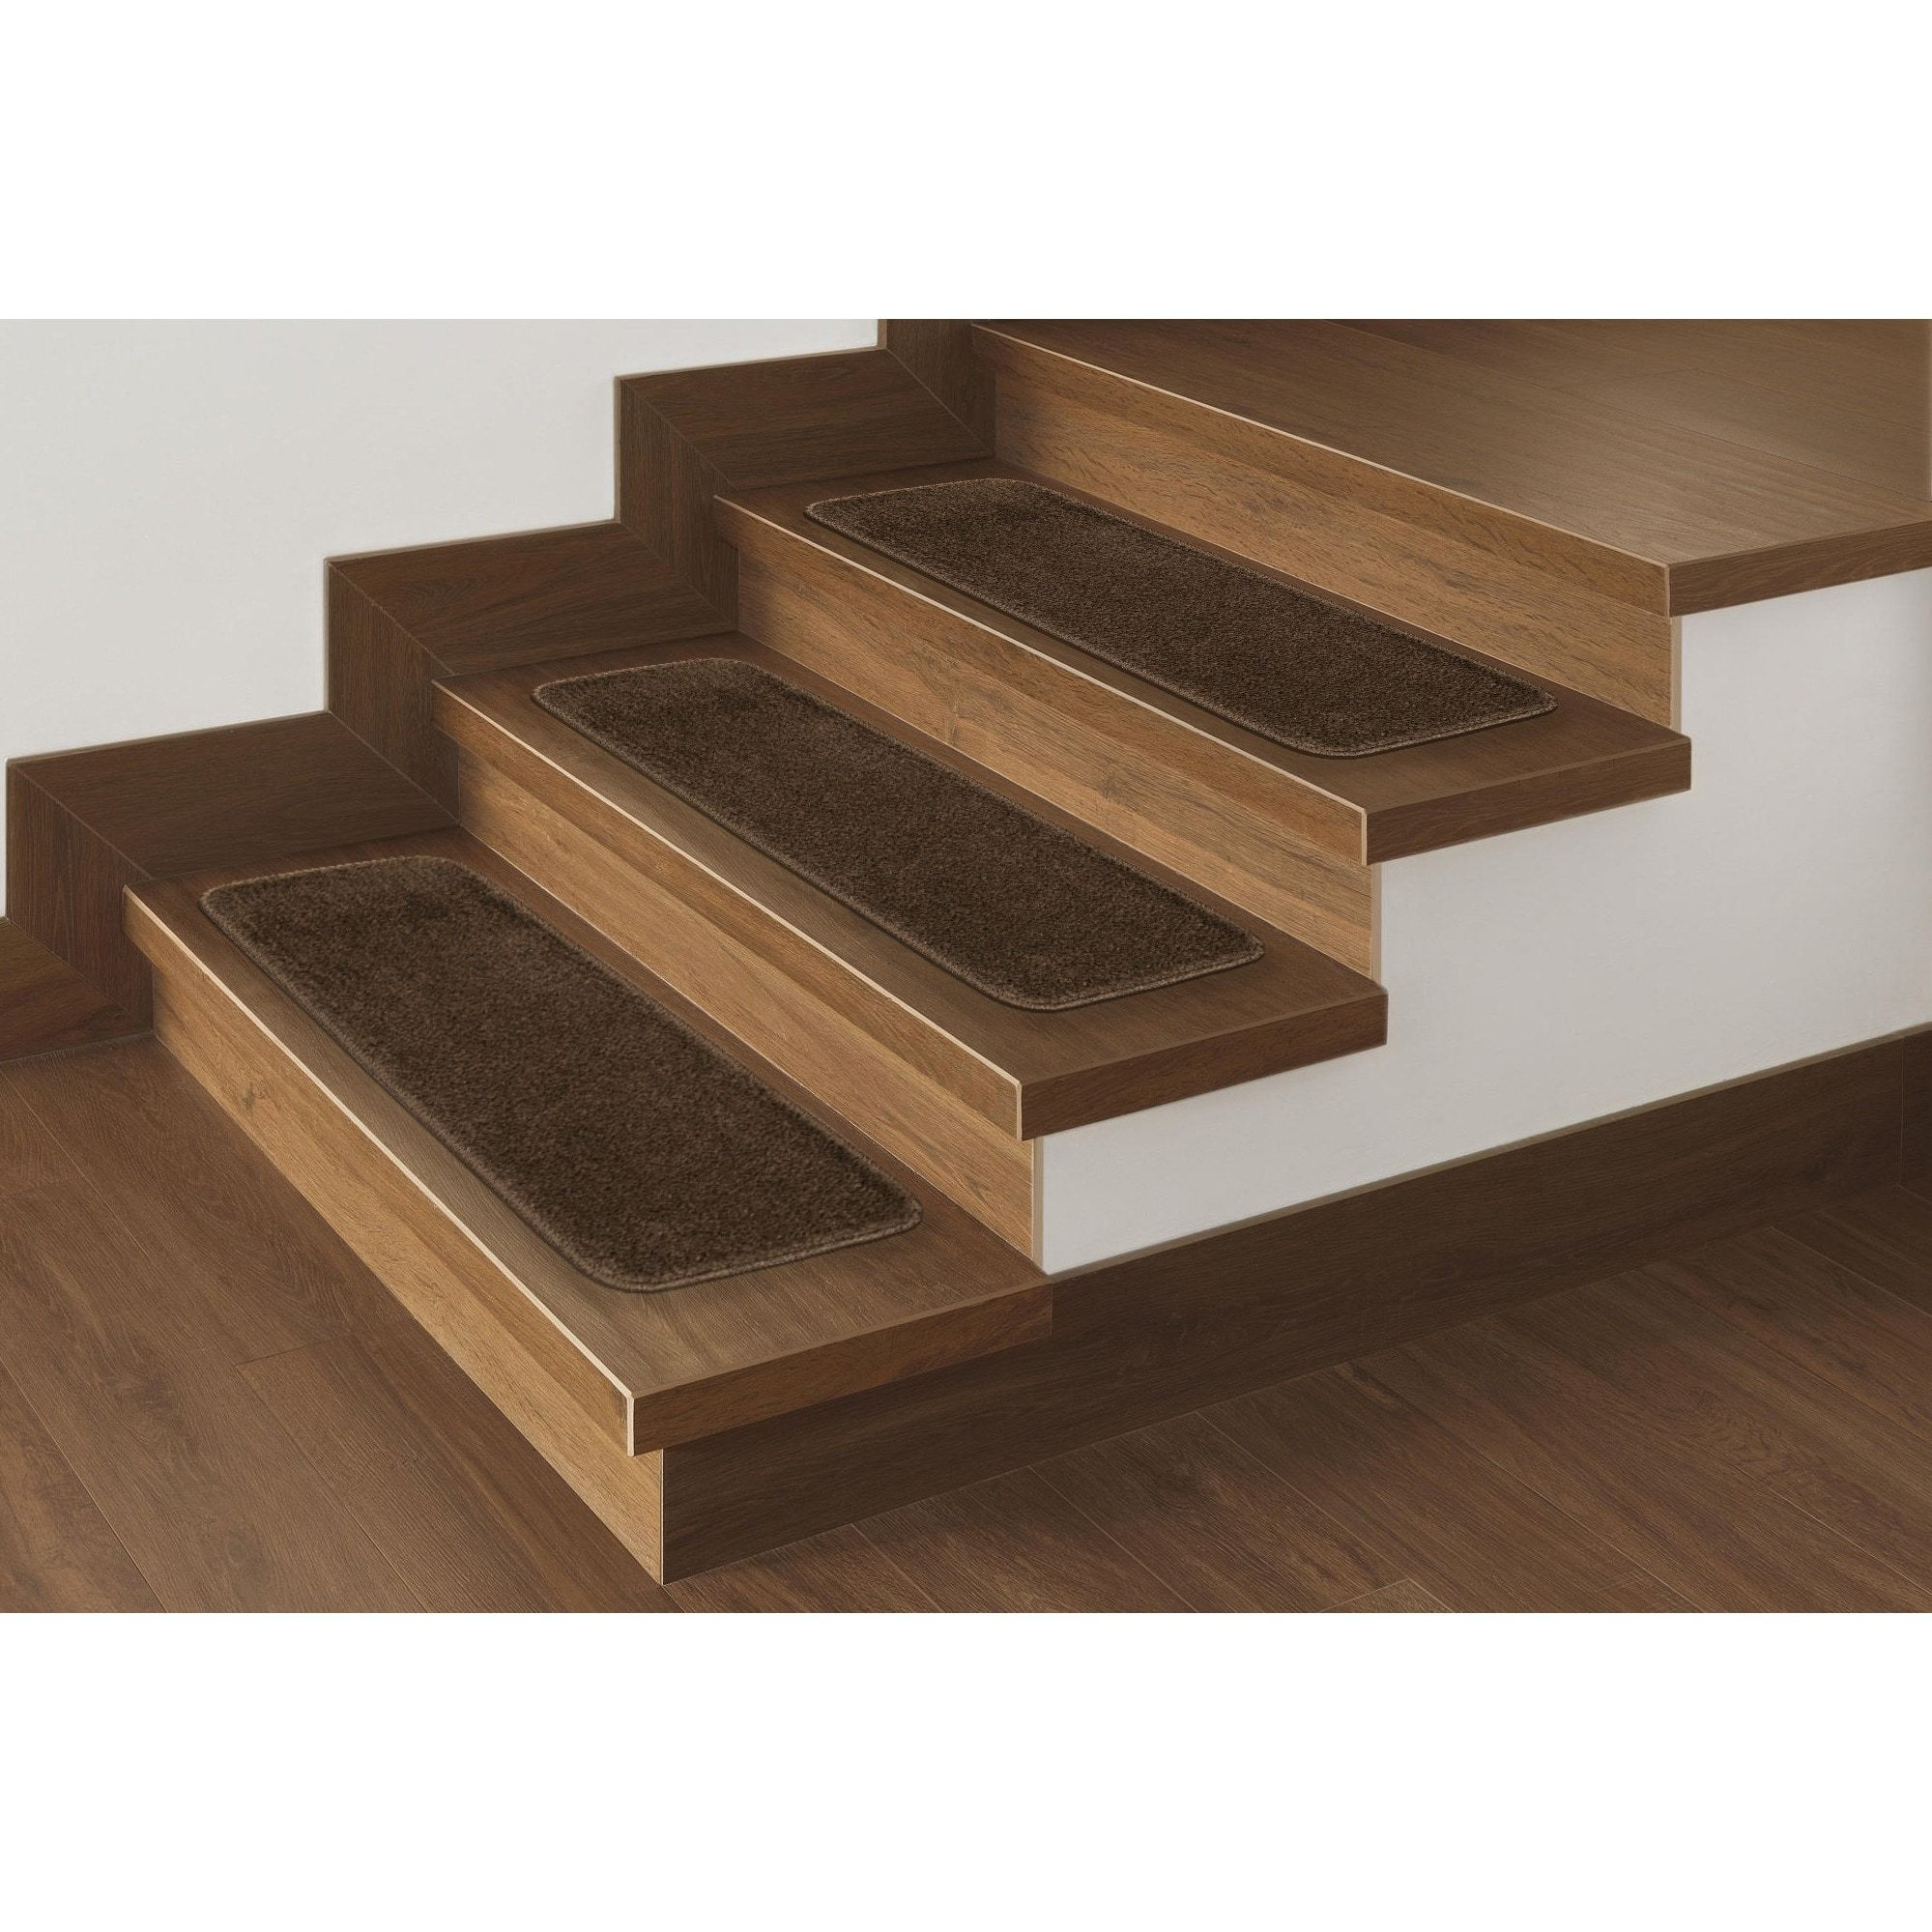 Ottomanson Softy Solid Color Non Slip Stair Treads In 2020 Stair | Ottomanson Softy Stair Treads | Carpet Stair | Softy Carved | Amazon | Softy Collection | Non Slip Stair